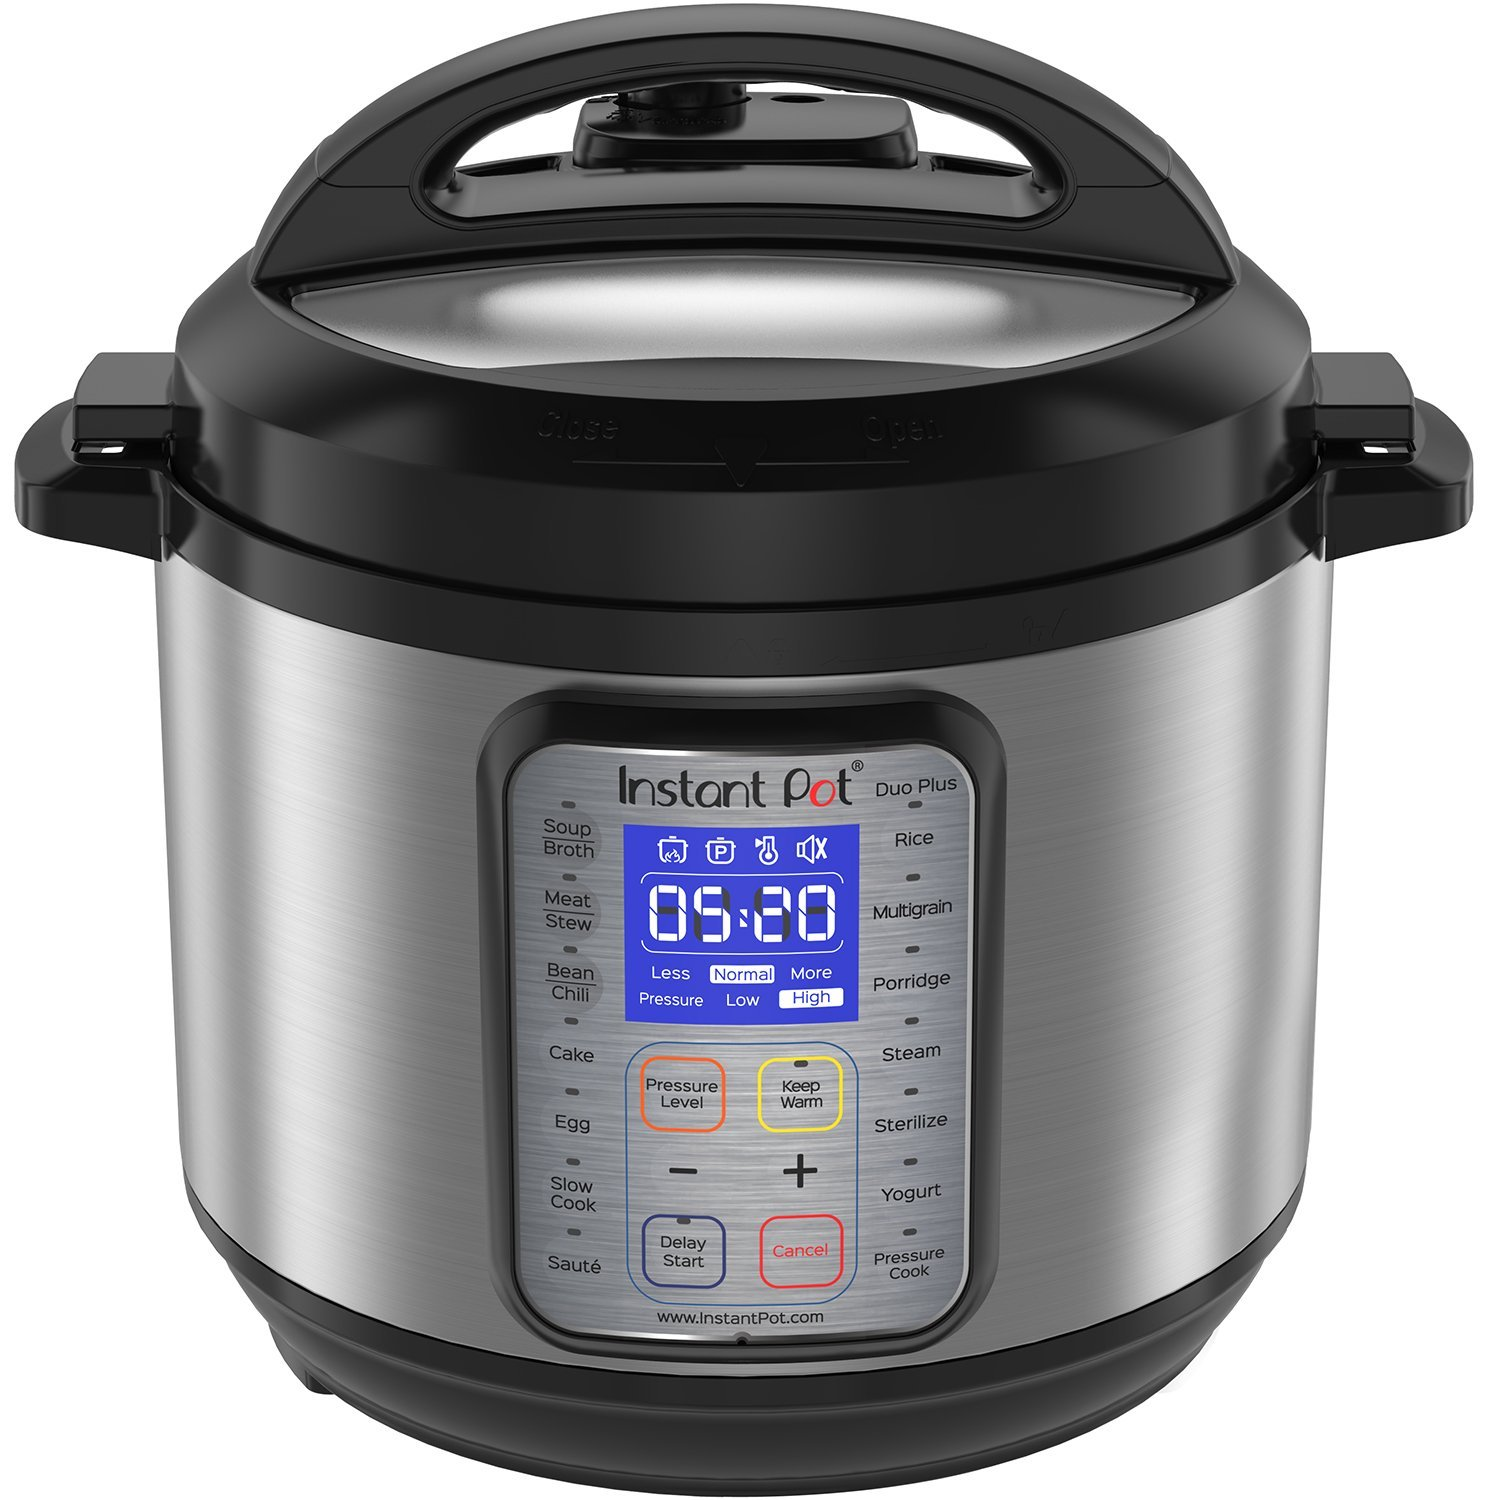 Instant Pot DUO Plus 6 Qt 9-in-1 Multi- Use Programmable Pressure Cooker,[ Pressure Cooker, ,Rice Cooker,Egg Cooker, Saute, Steamer, Warmer, and Sterilizer...... ]  New!